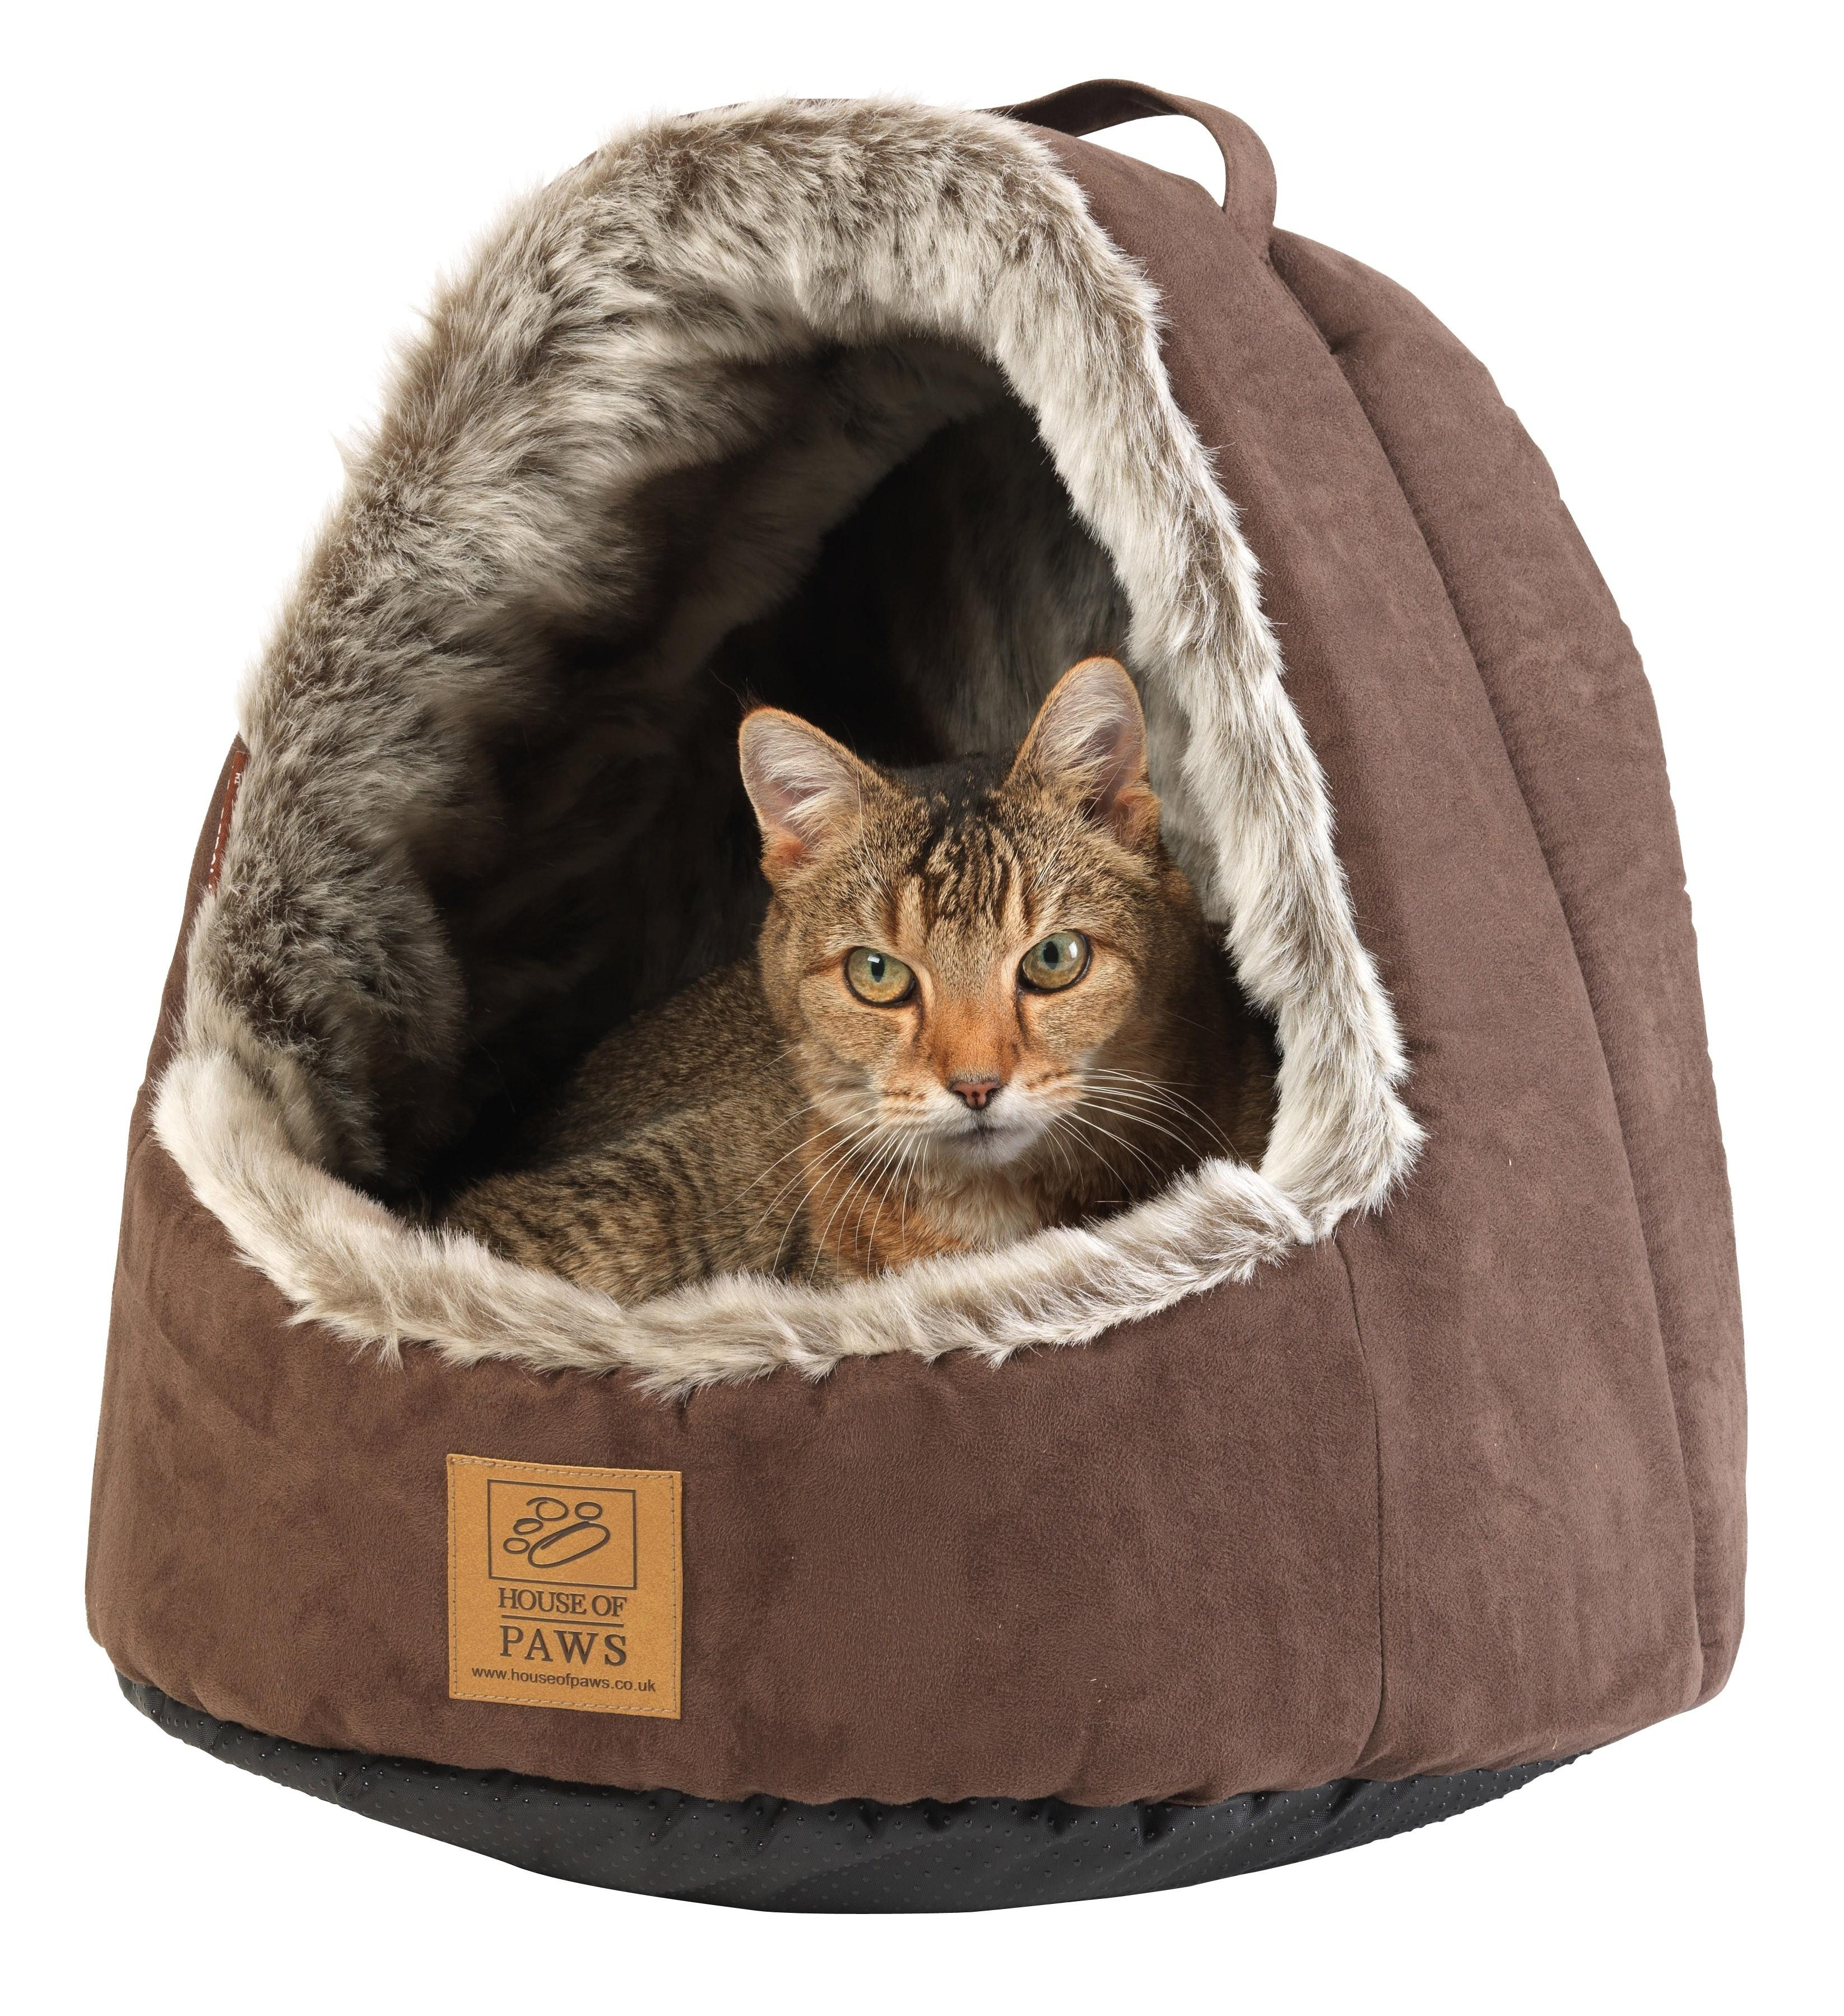 Faux Arctic Fox Hooded Cat Bed Beds